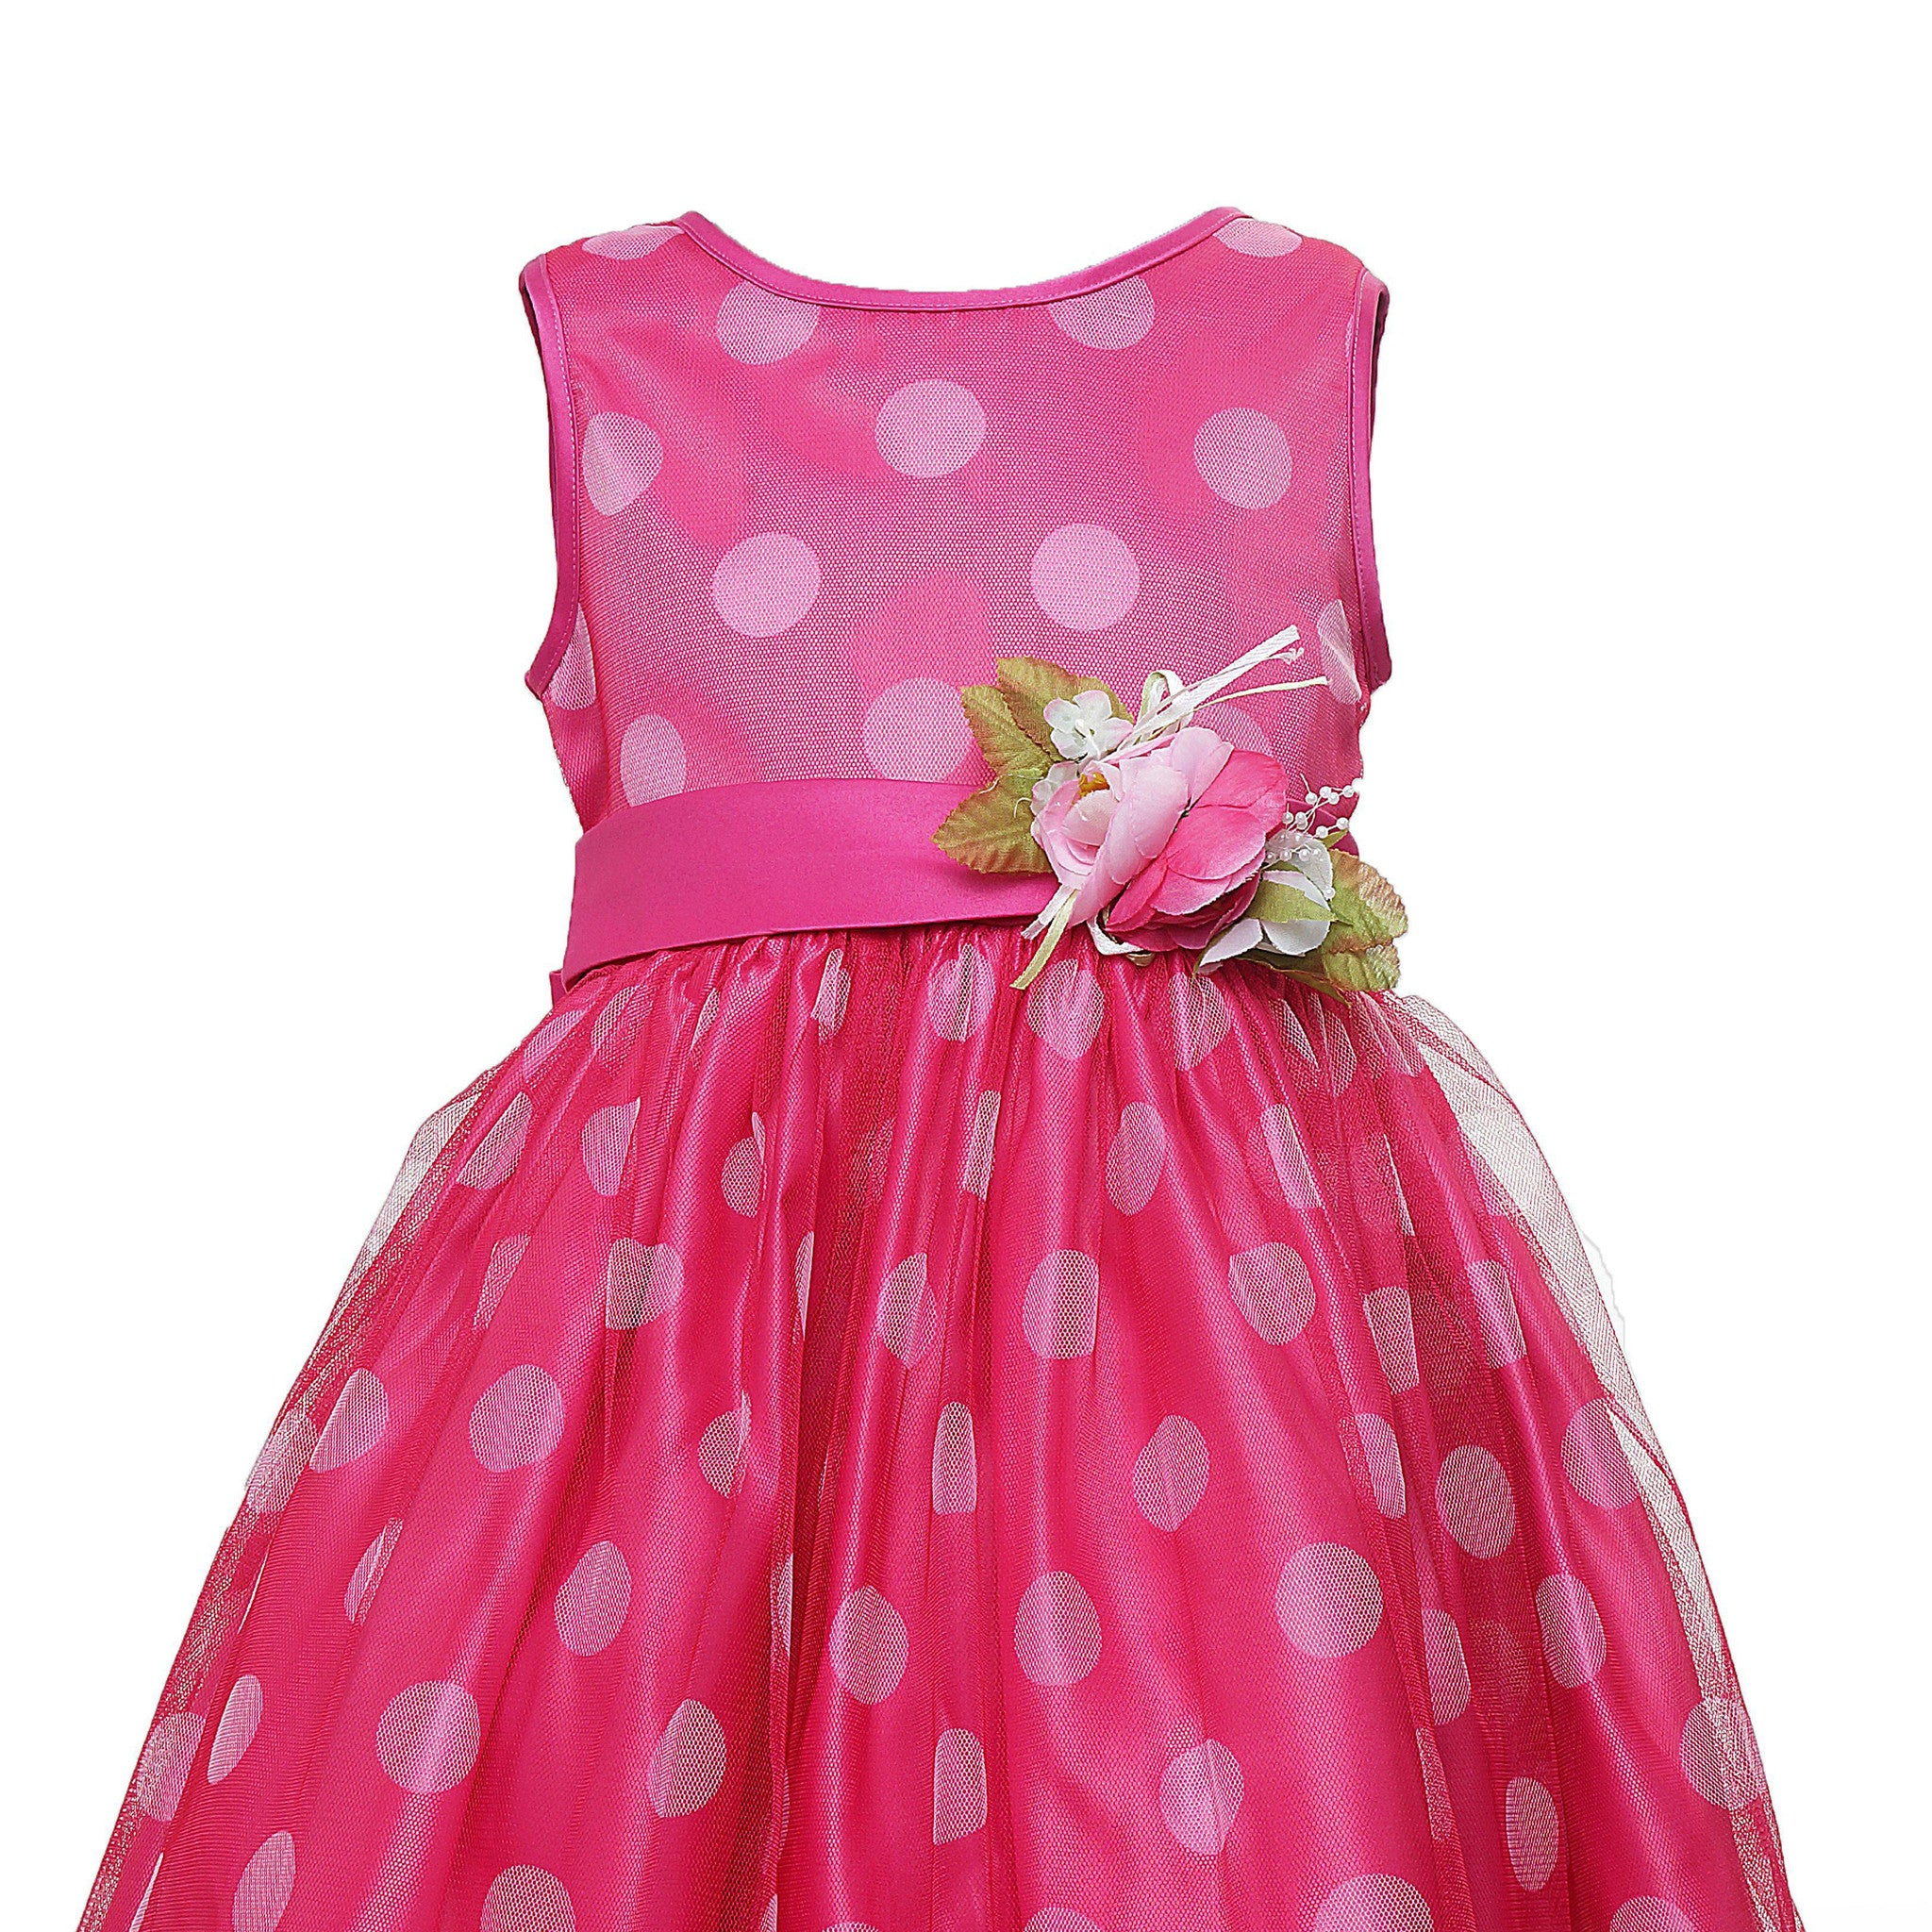 8f232ca53c99 Party Wear Dresses   Frocks for Kids Girls Online India – Coctail.in